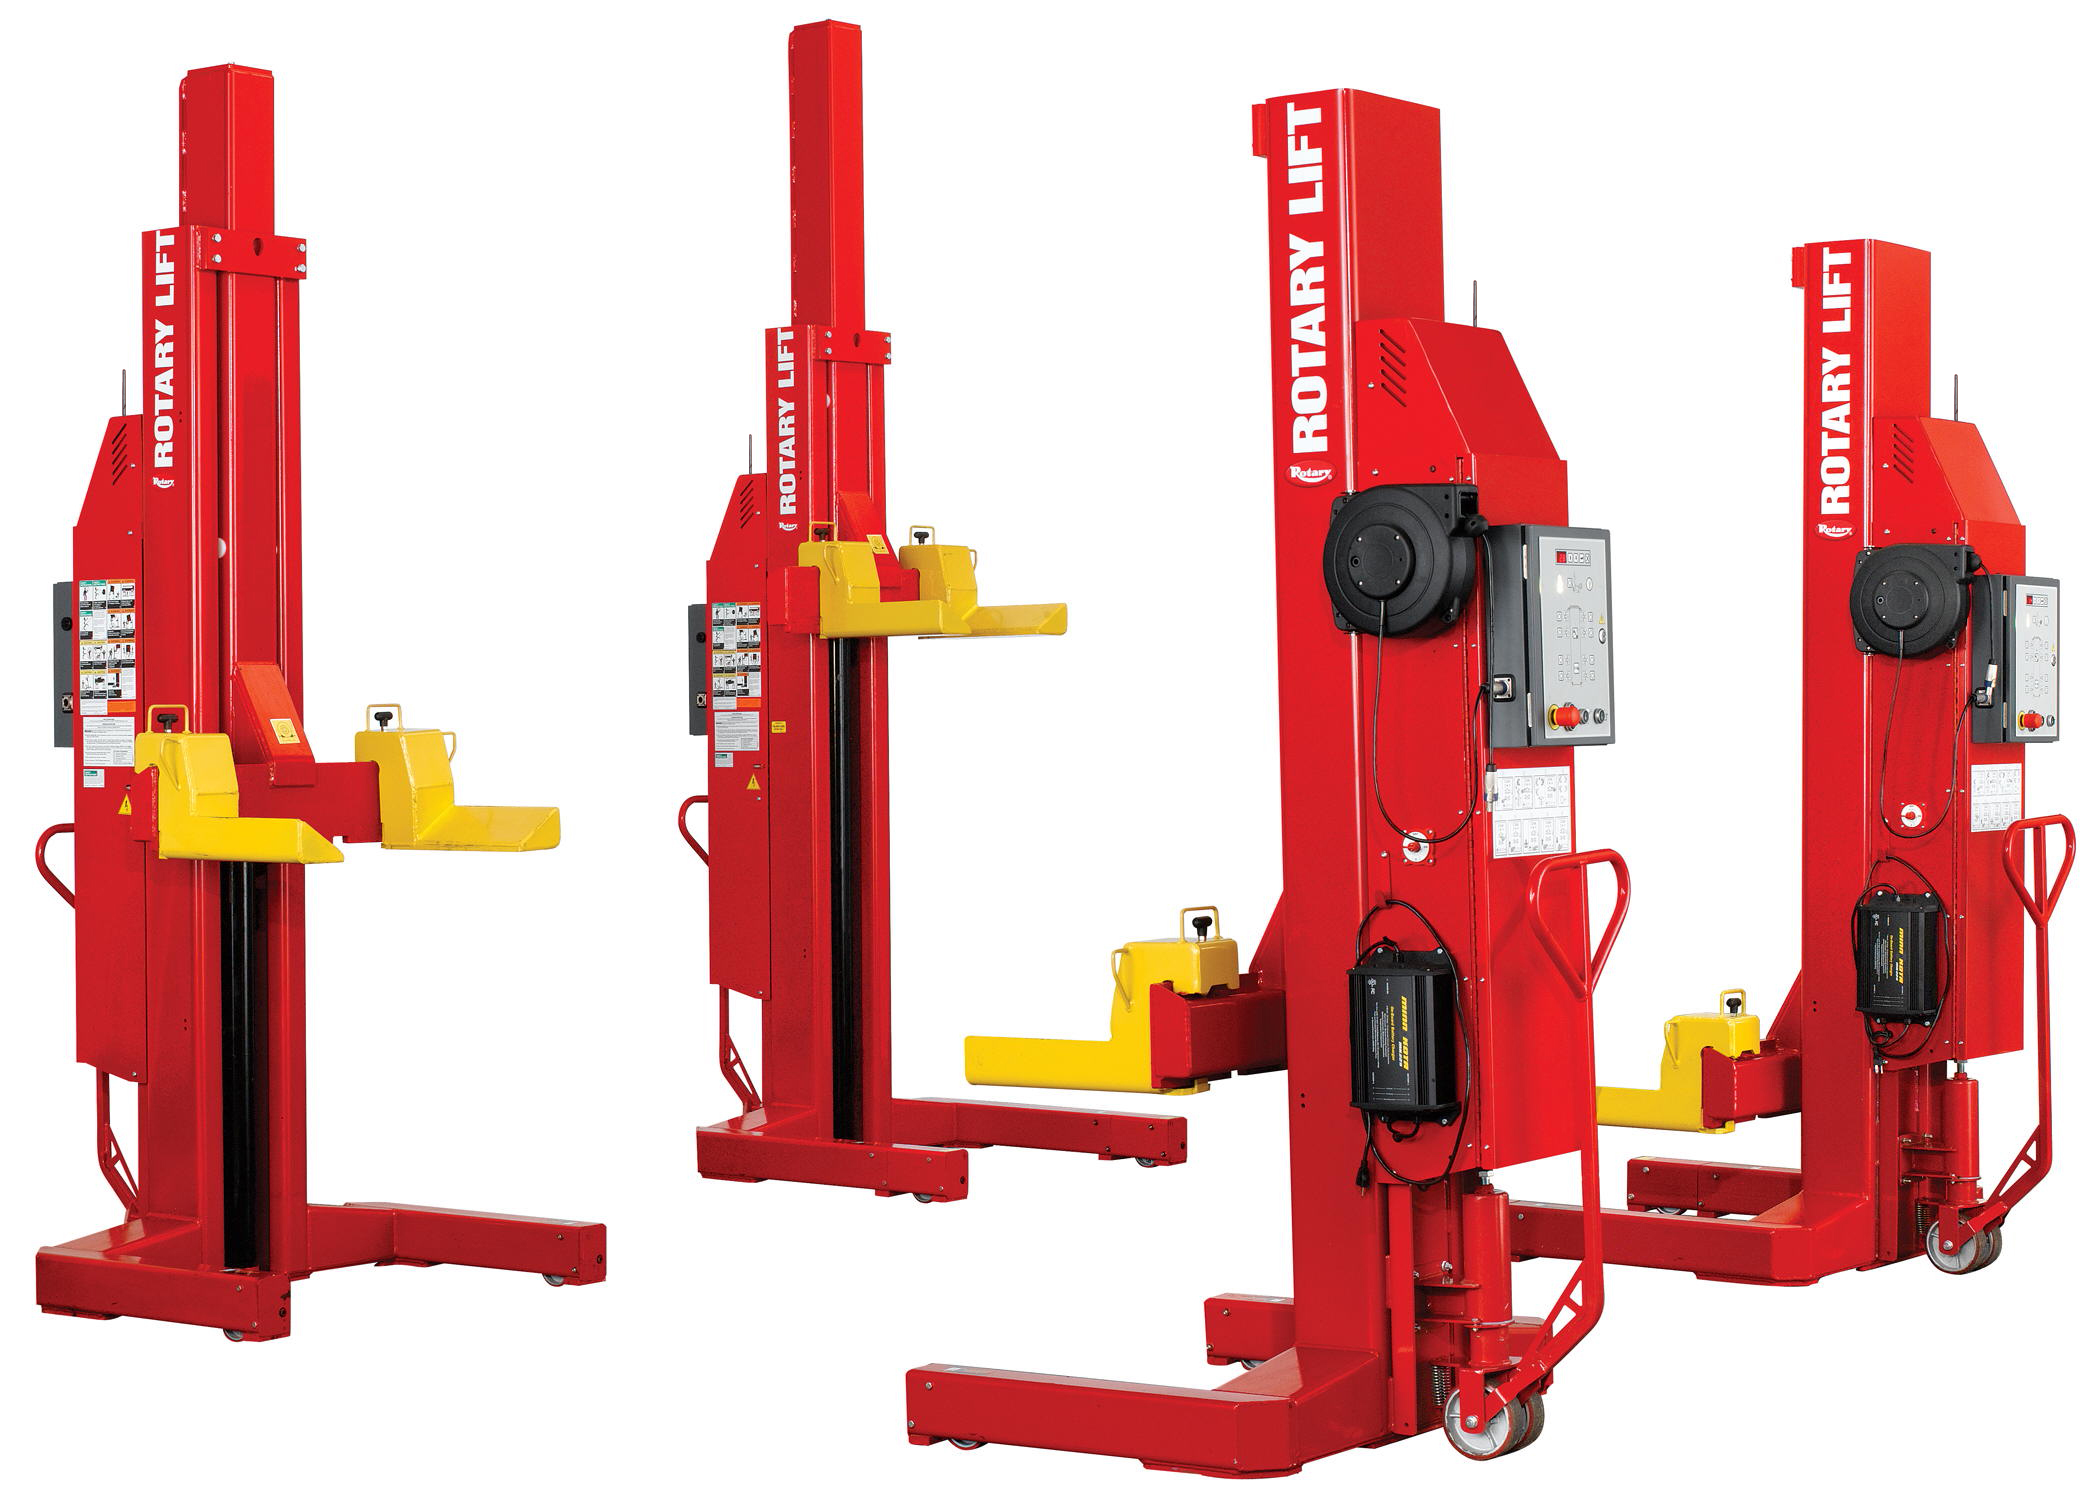 Rotary Lift offers Mach series lifts